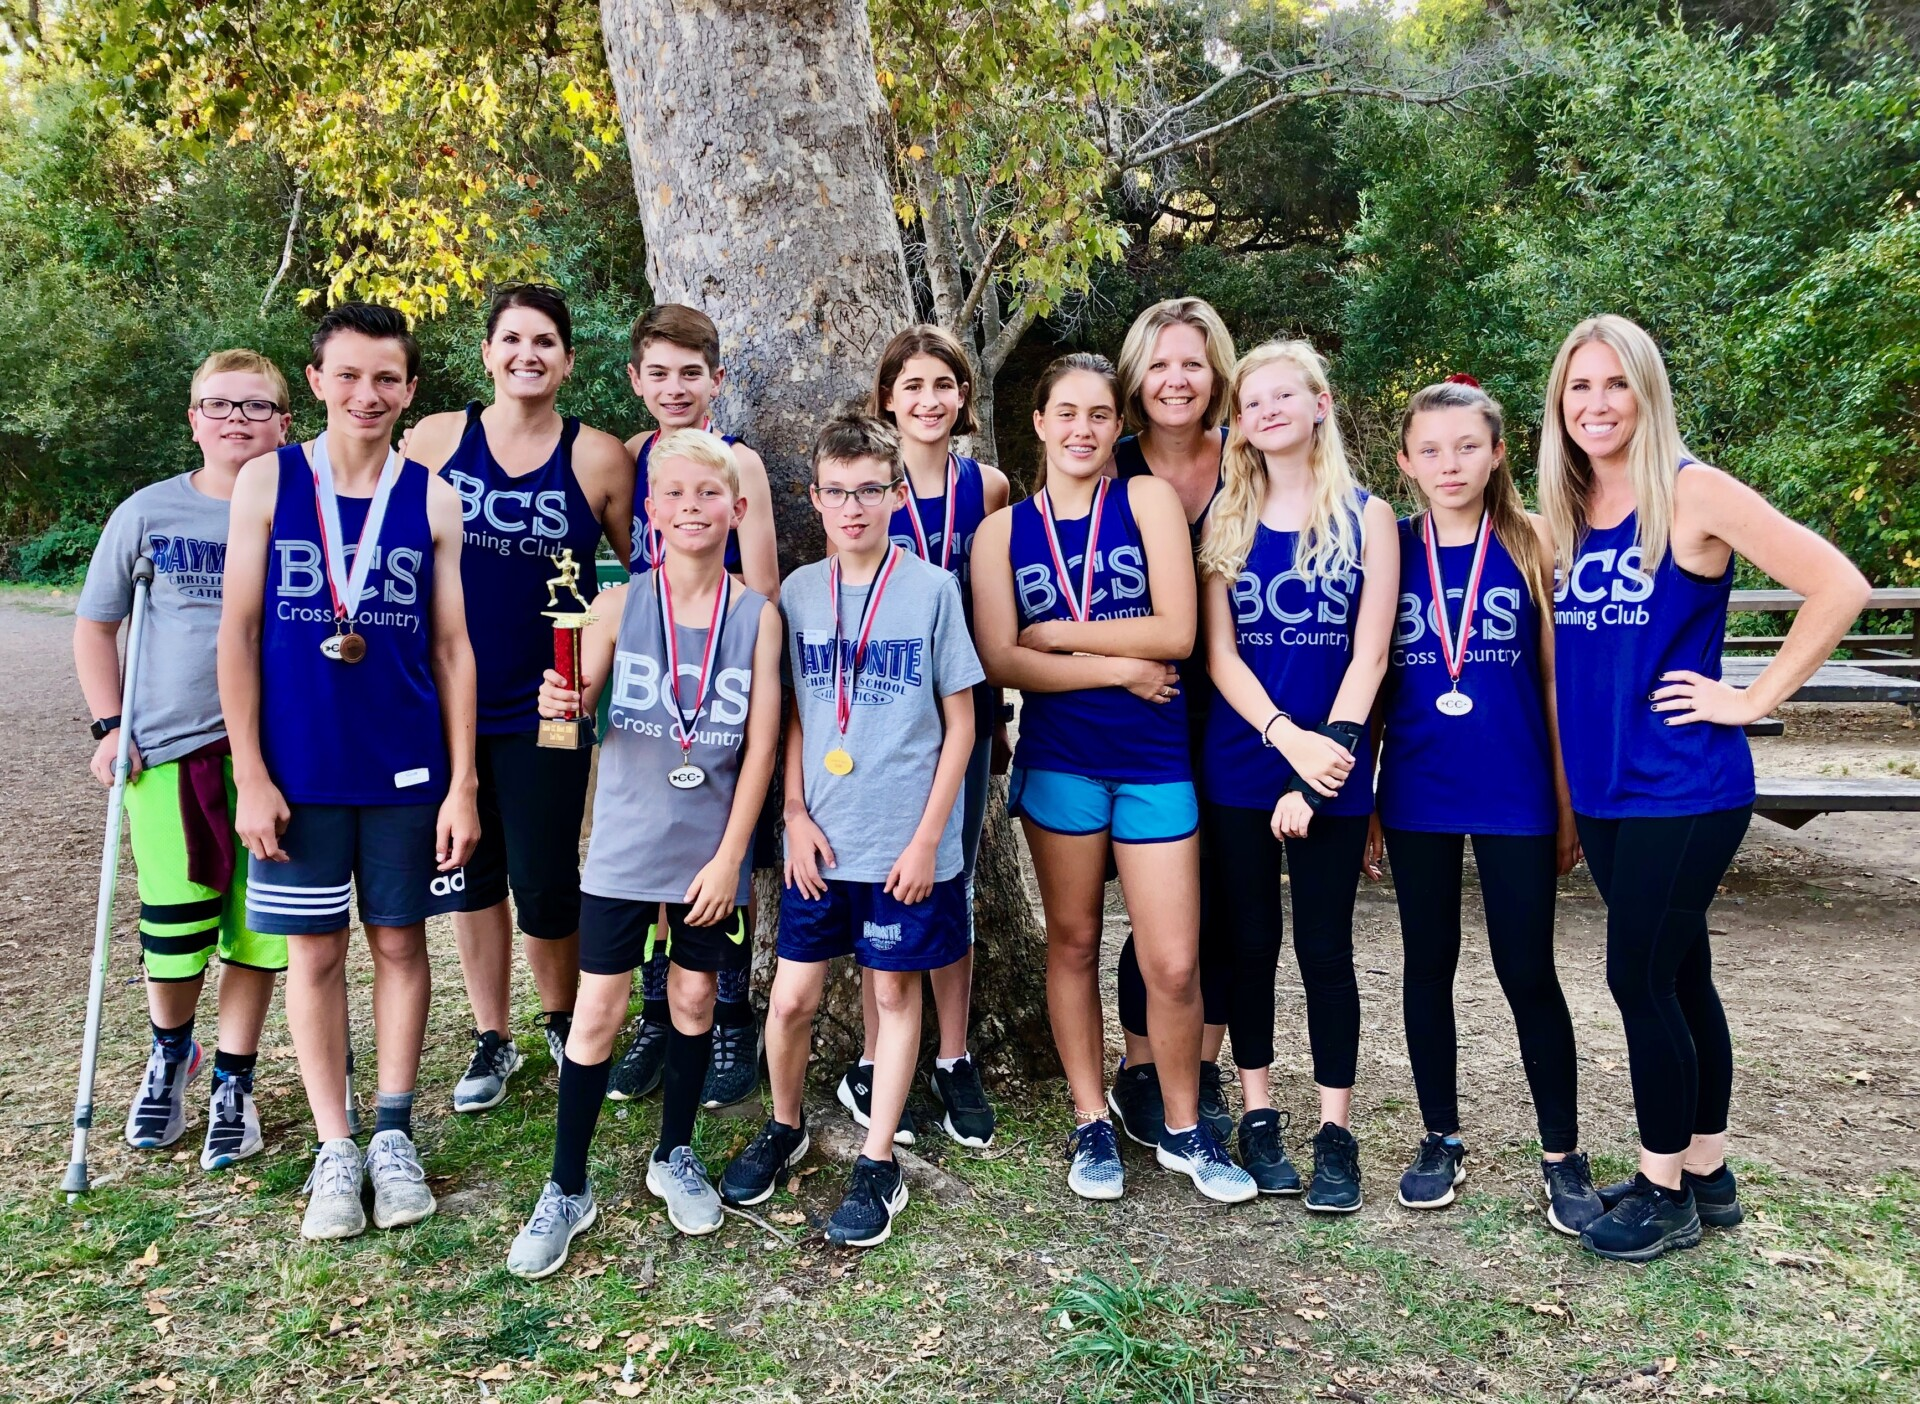 BCS Cross Country Team Comes In Second Place!